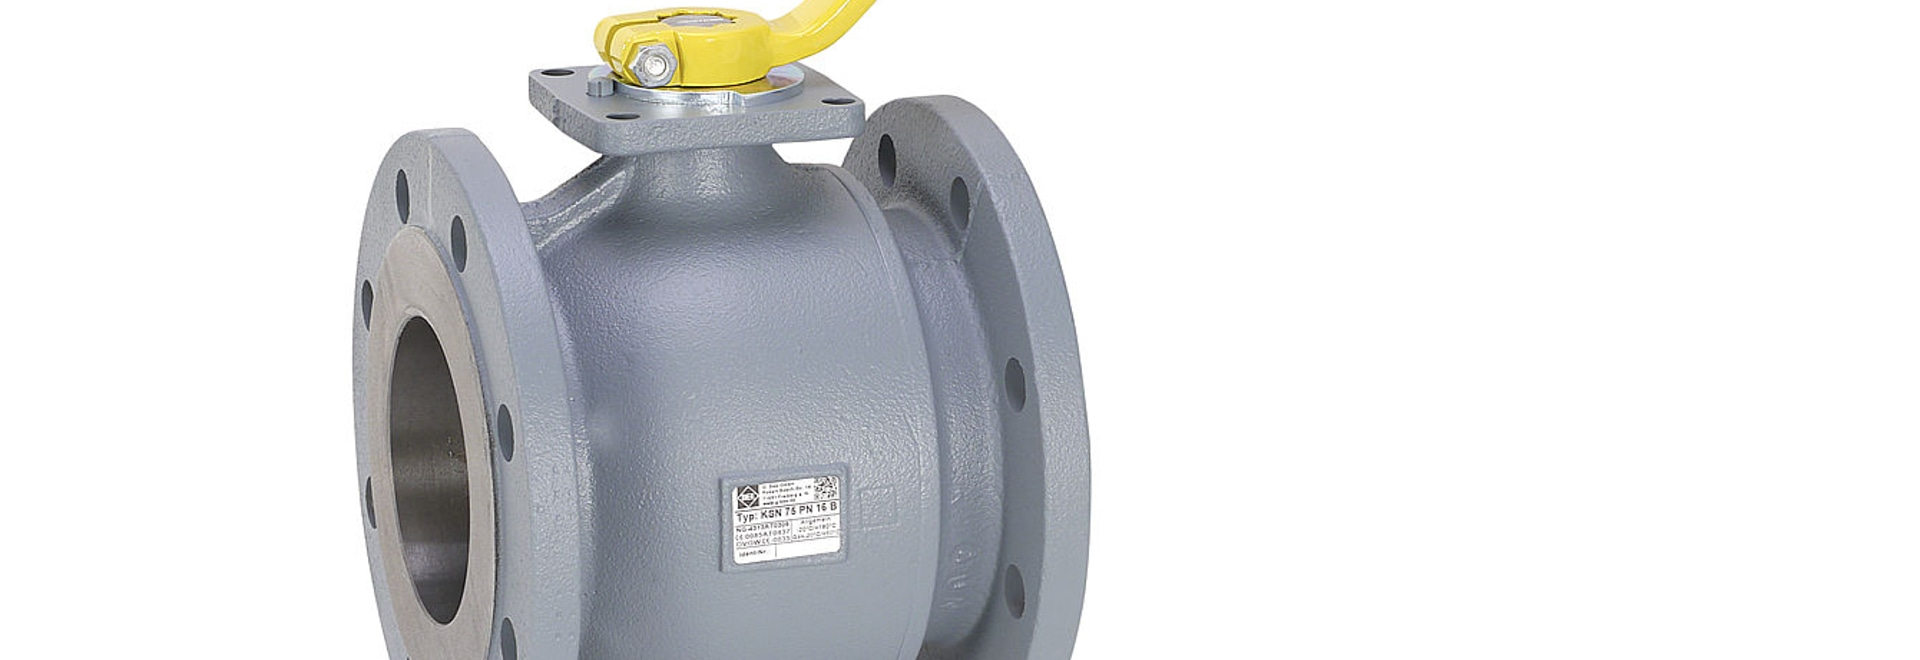 gas ball valves available